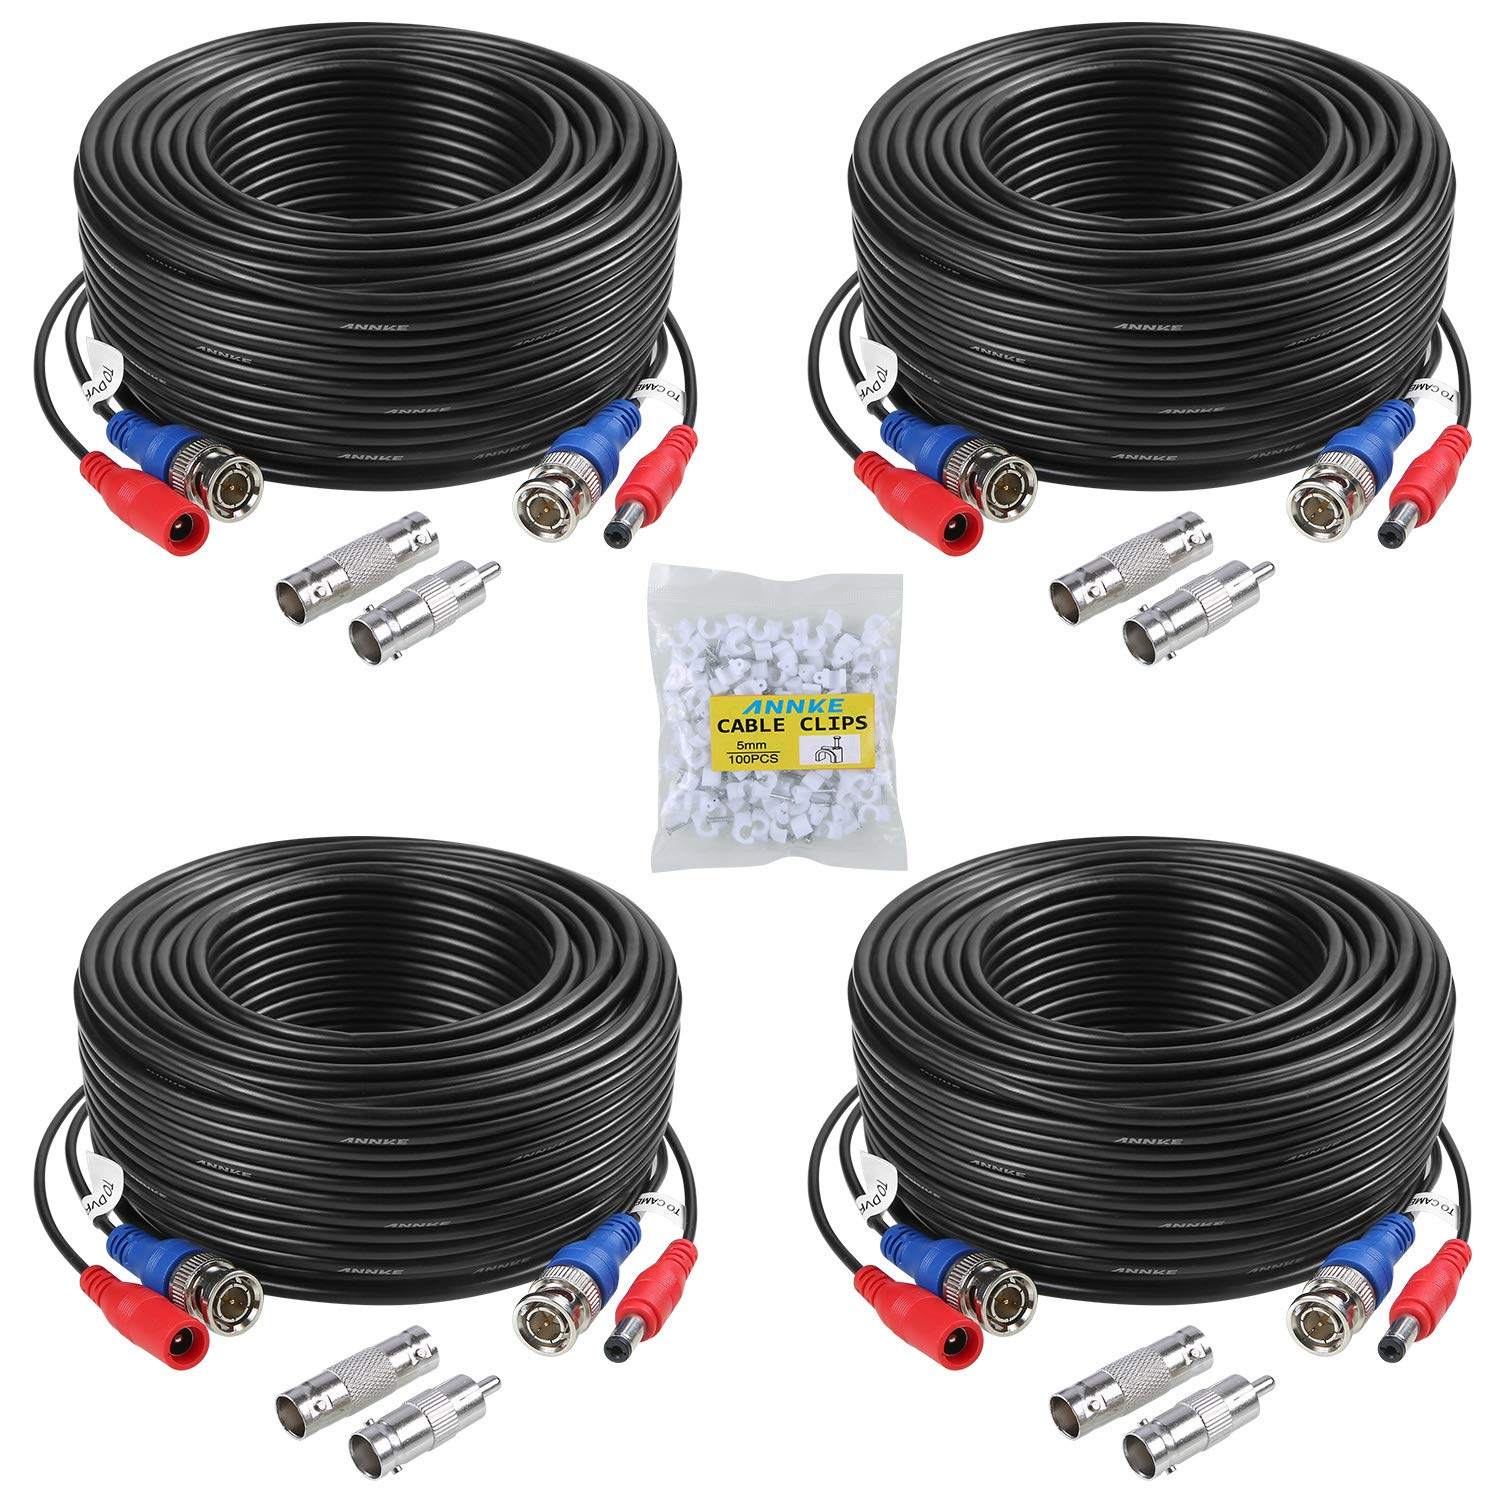 ANNKE 100 Feet (30 meters) 2-In-1 Video/Power Cable with BNC Connectors and RCA Adapters for Video Security Systems (4-Pack, Black) by ANNKE